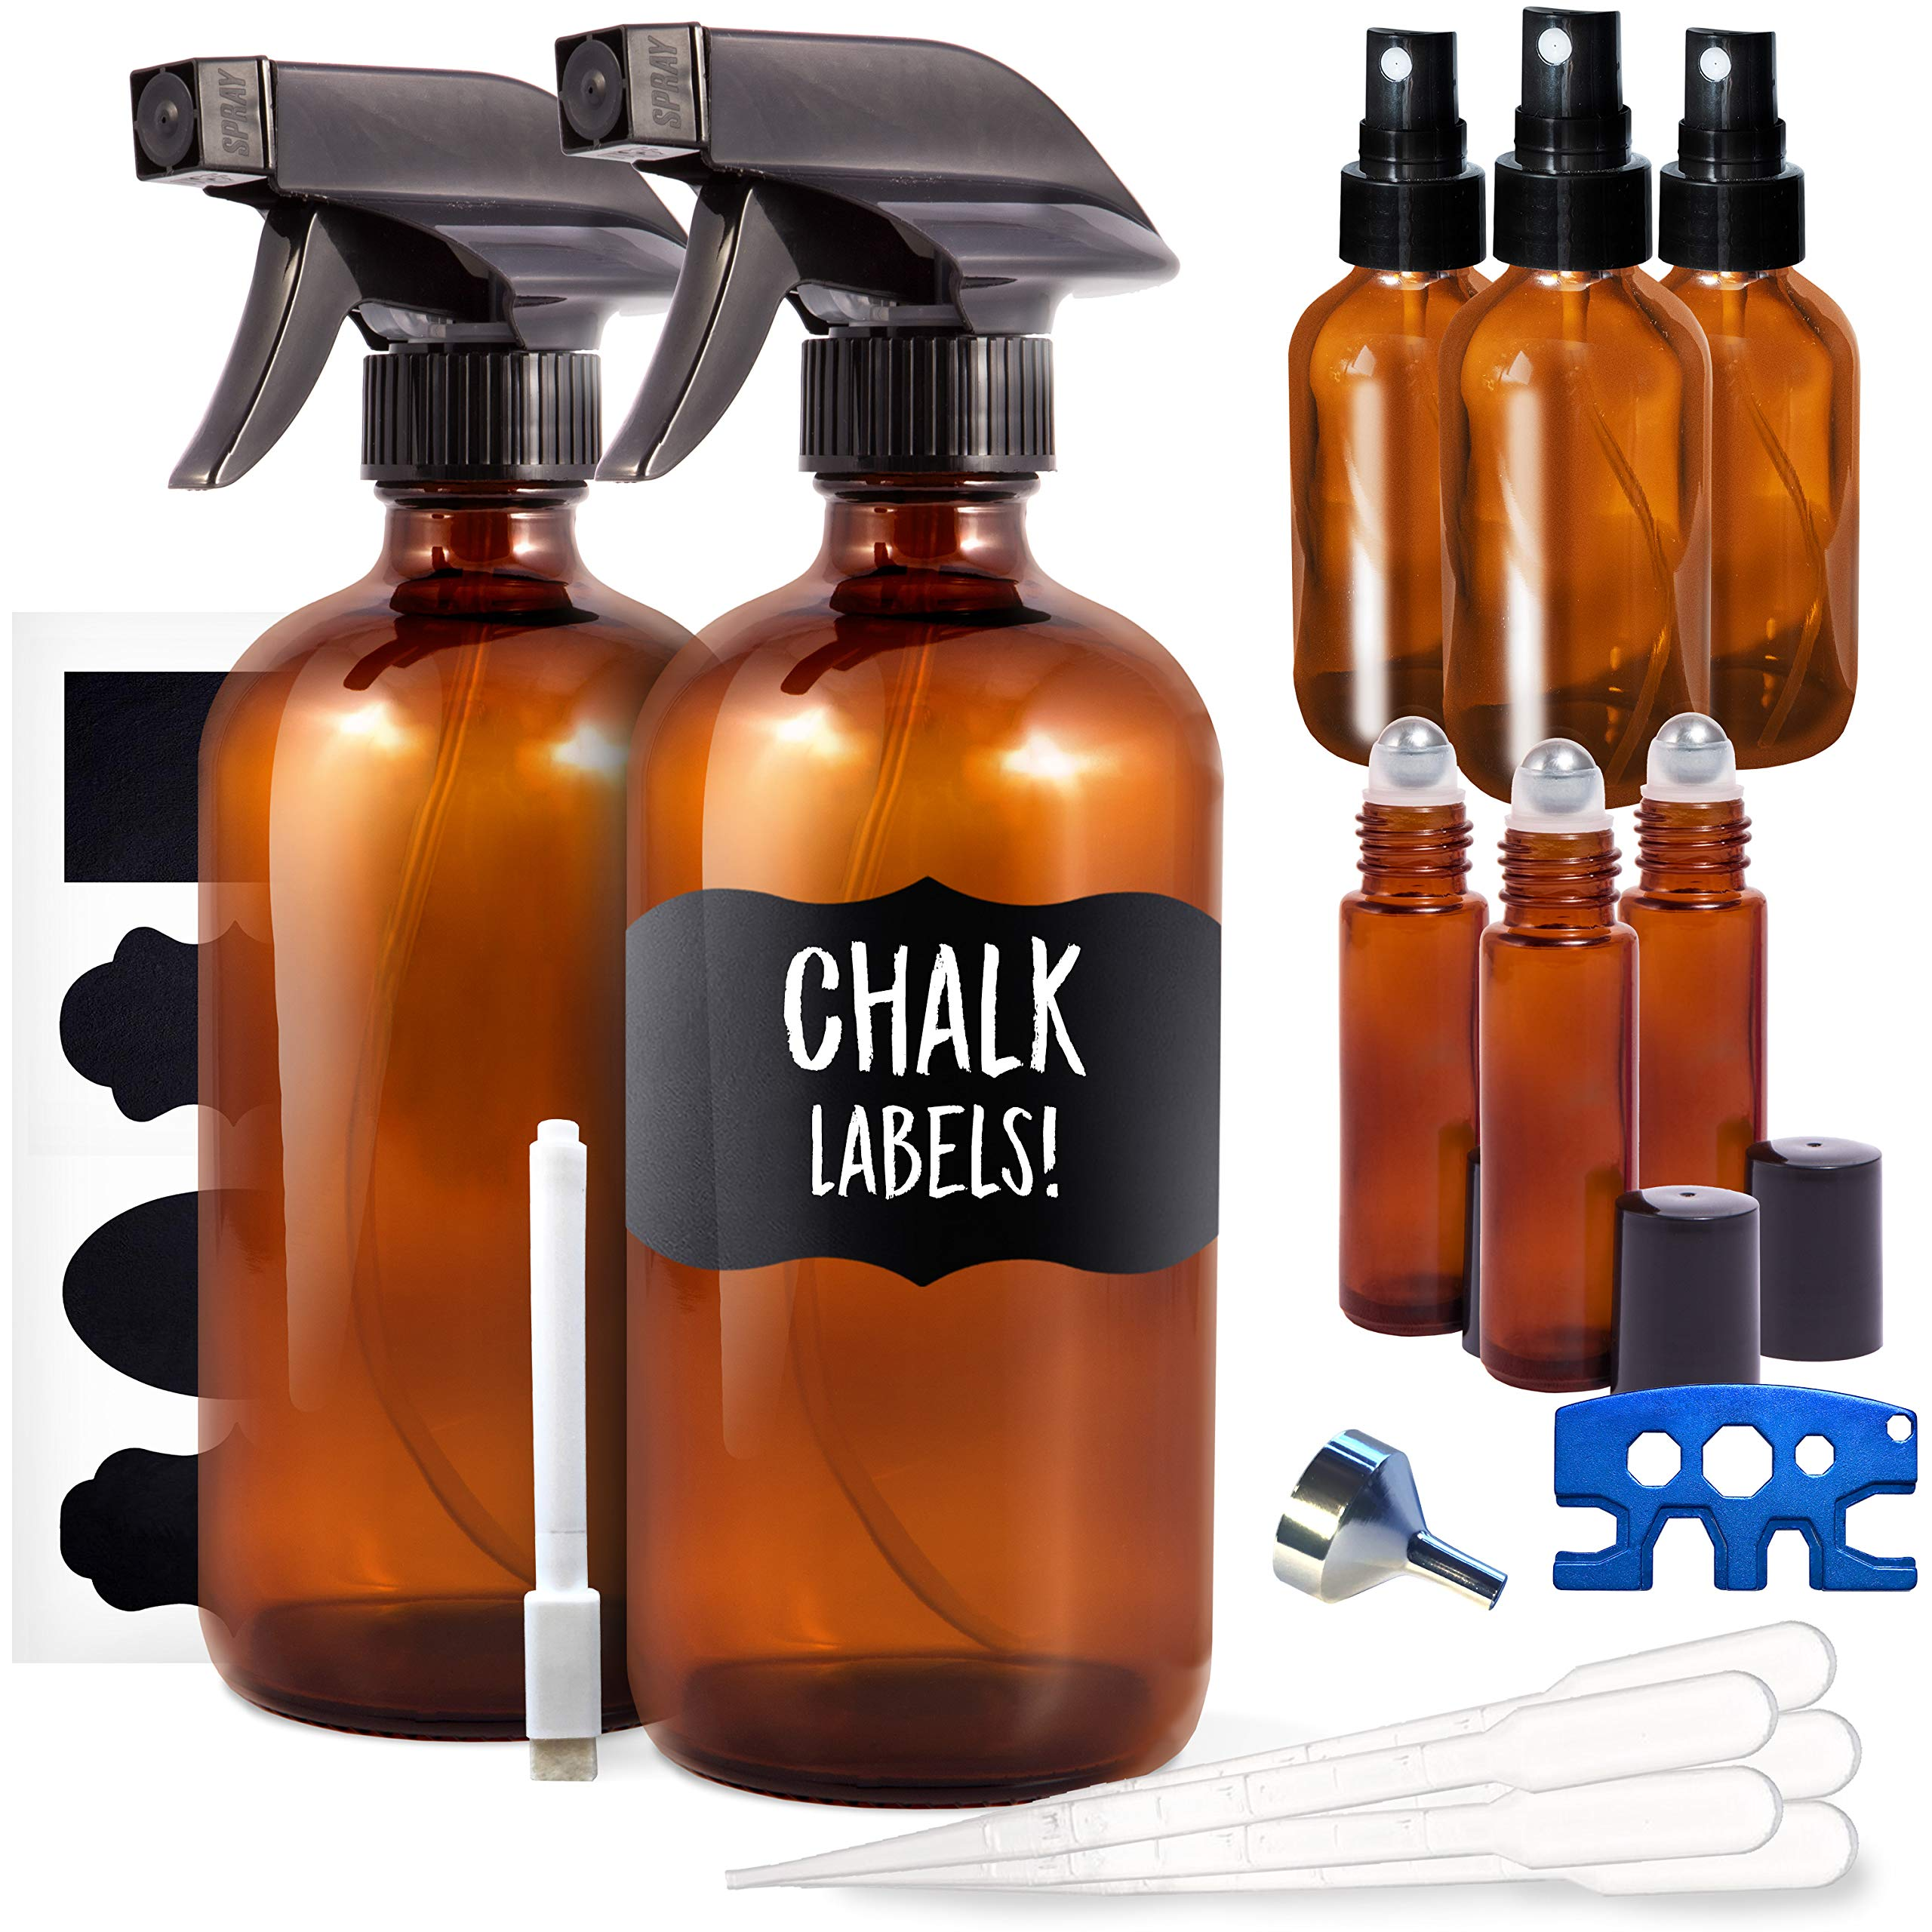 9 Pack Amber Glass Spray Bottle Kit, 2 x 16oz Spray, 3 x 2oz Spray and 3 x 10ml Roller Bottles for Essential Oils and Cleaning Solutions (Bonus: Chalk Labels, Funnel and Roller Bottle Tool)